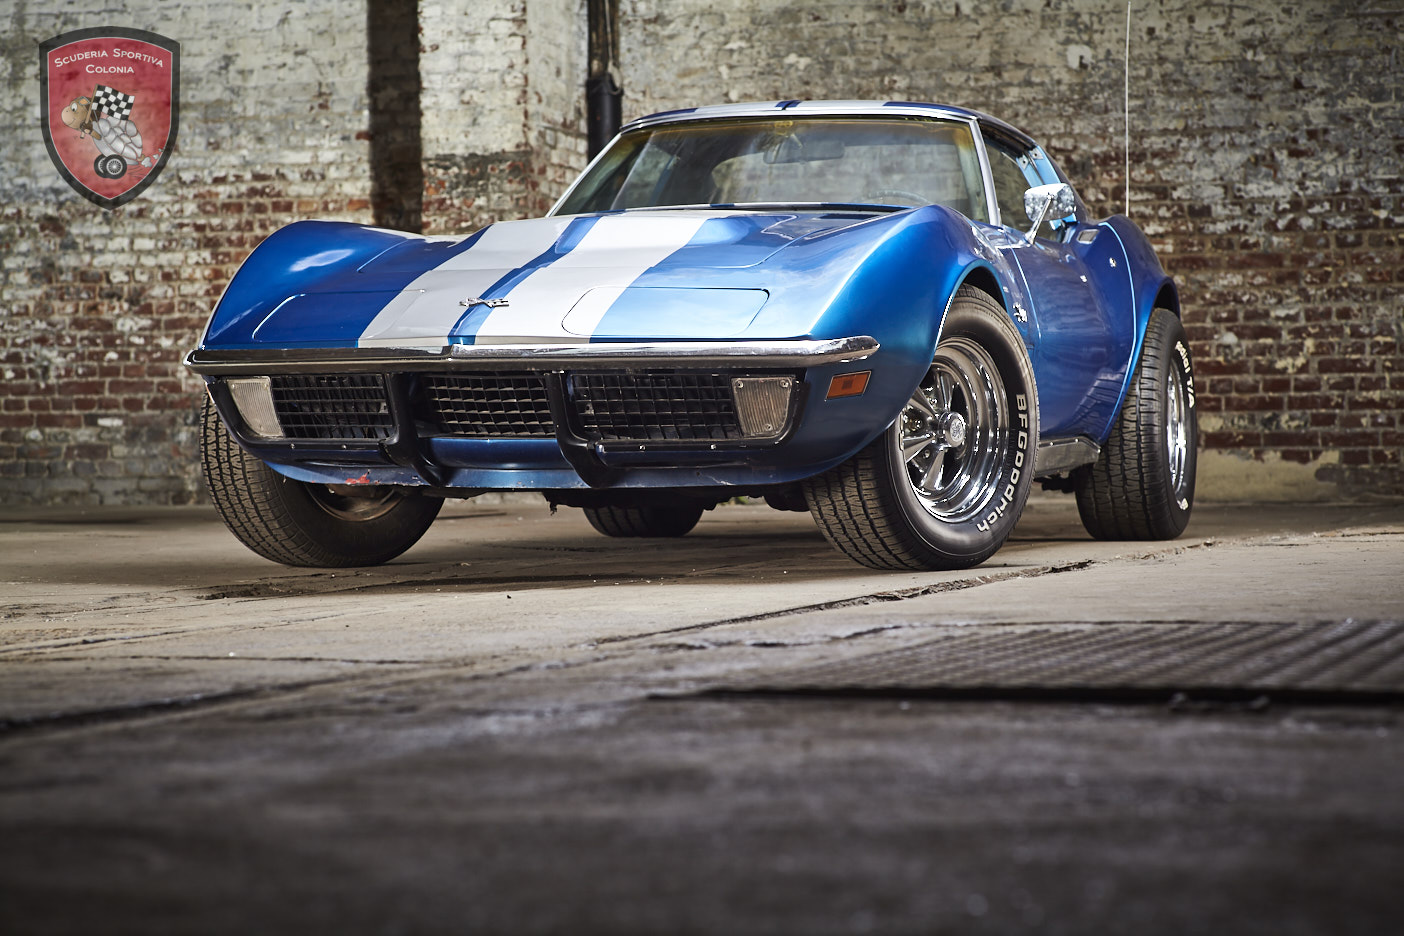 Corvette Stingray C3 Targa big block